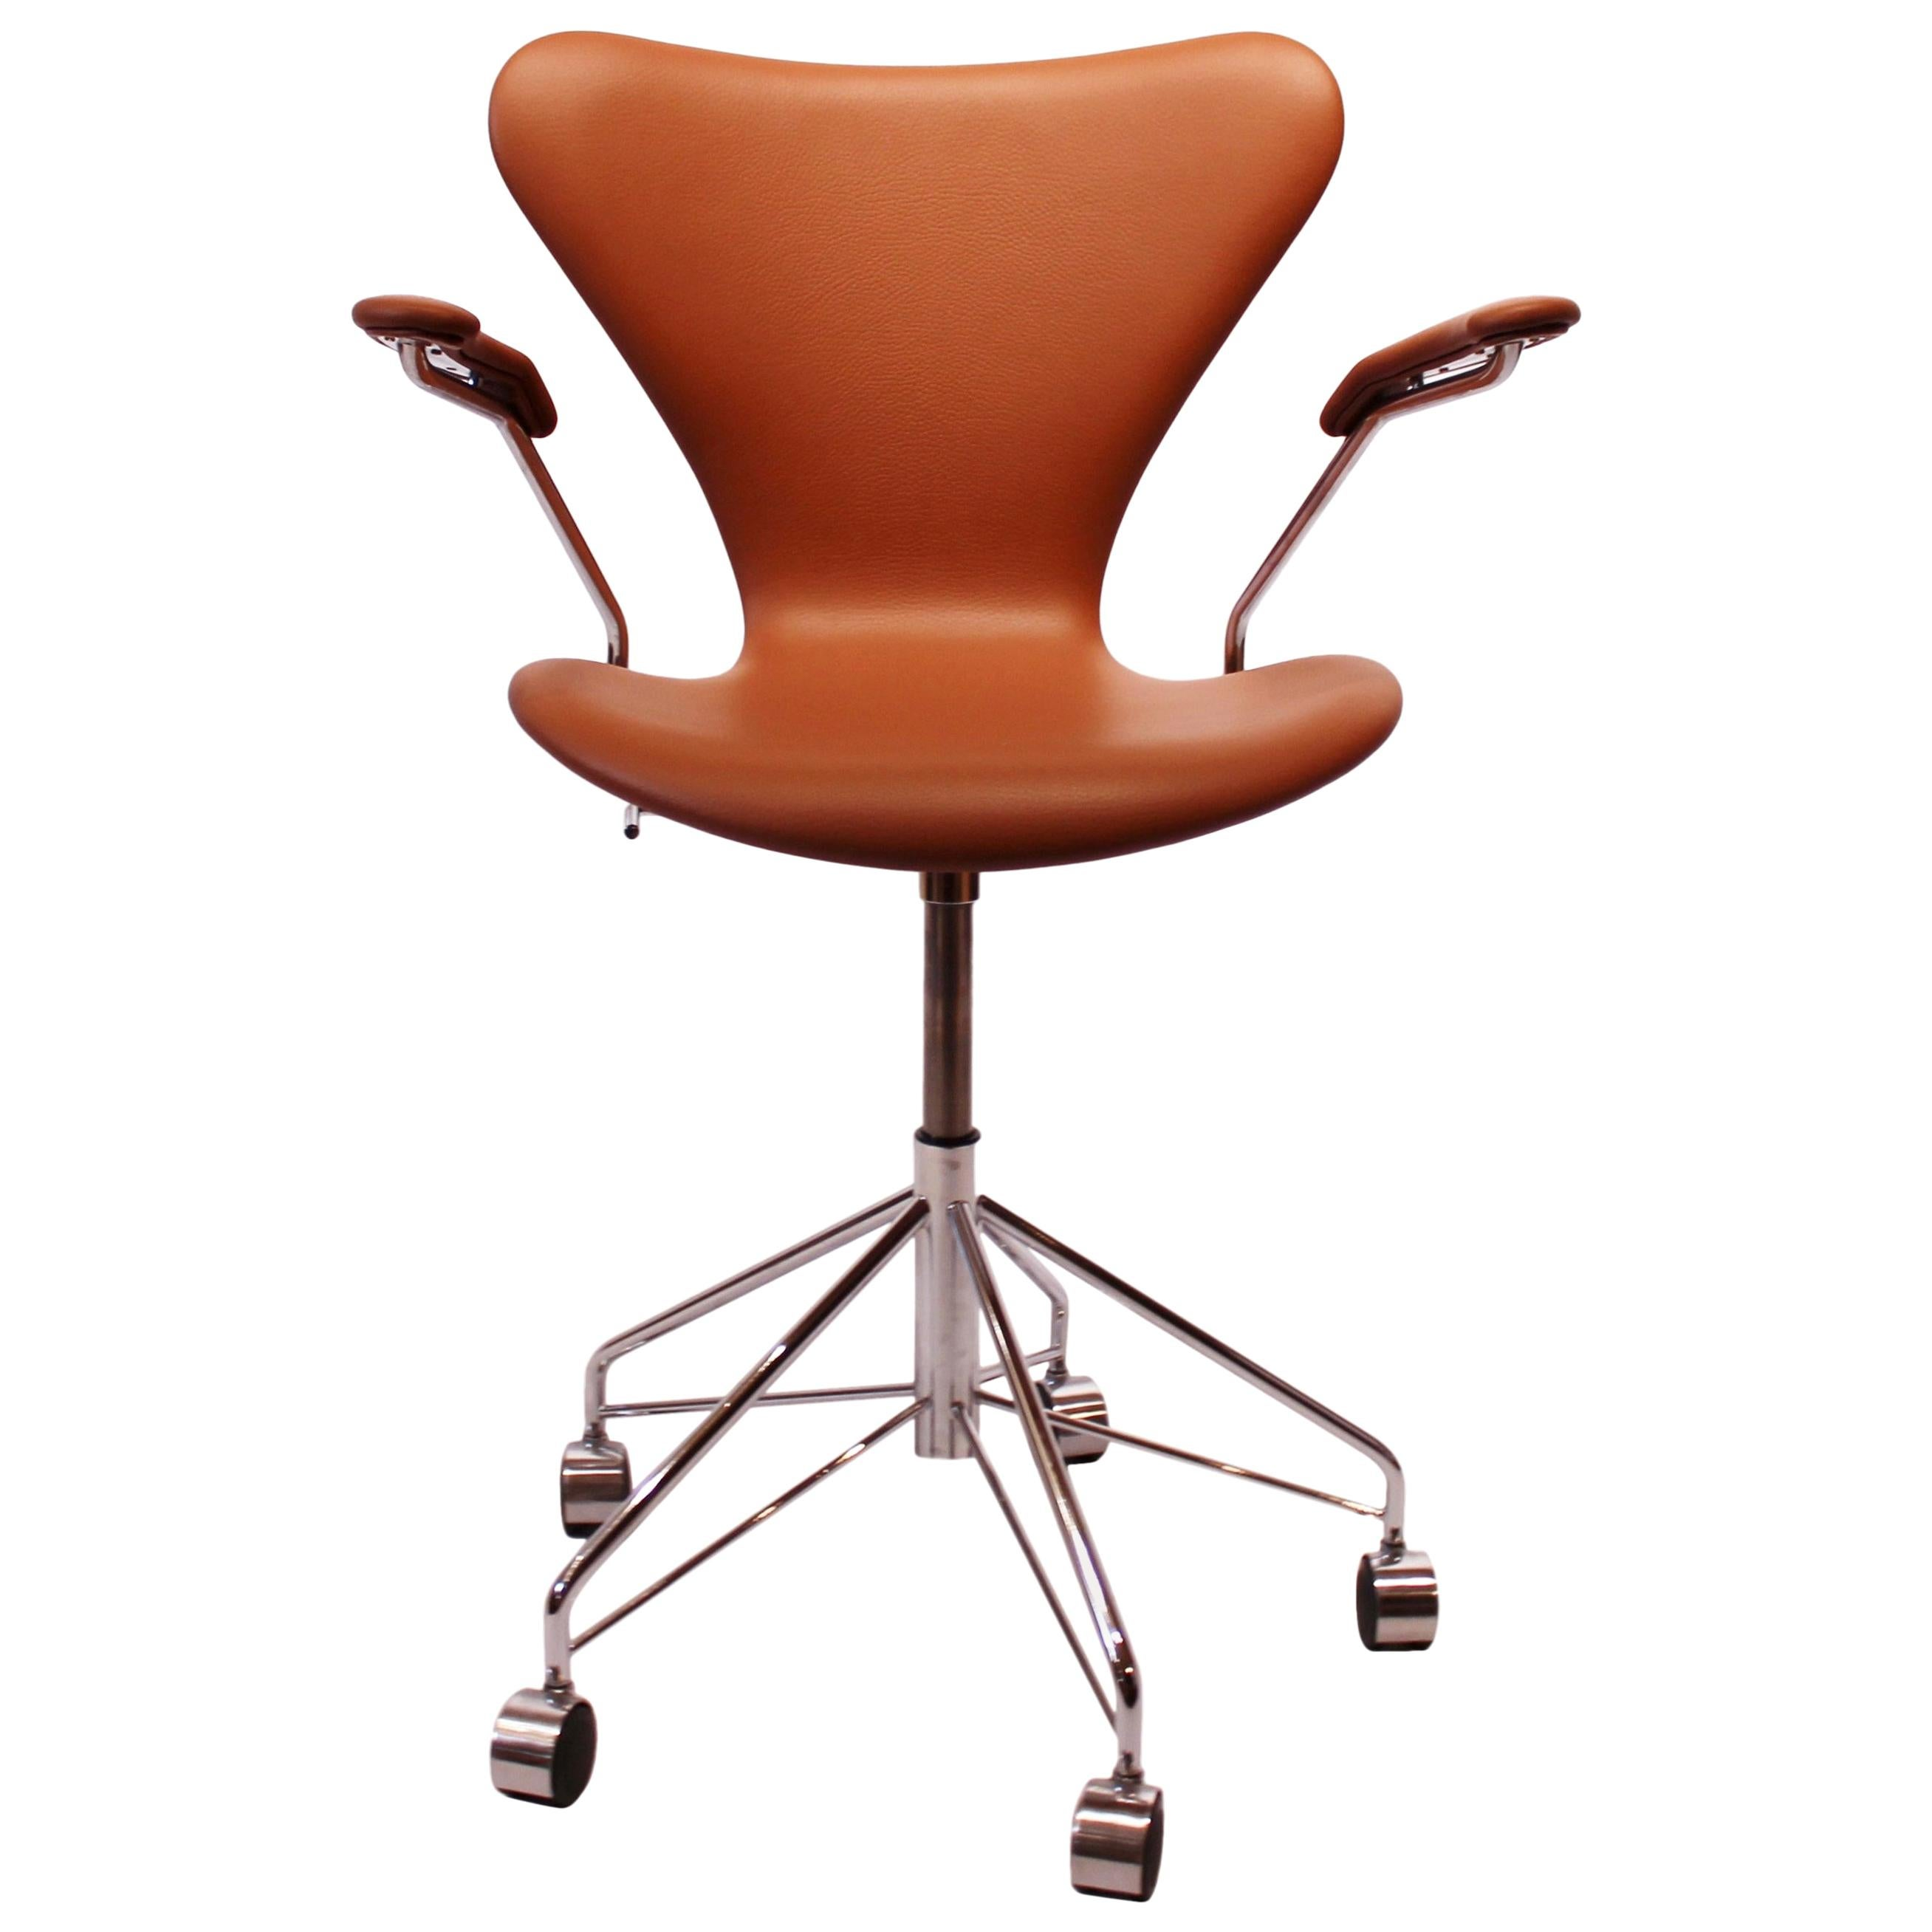 Seven Office Chair, Model 3217, in Cognac Classic Leather, Arne Jacobsen